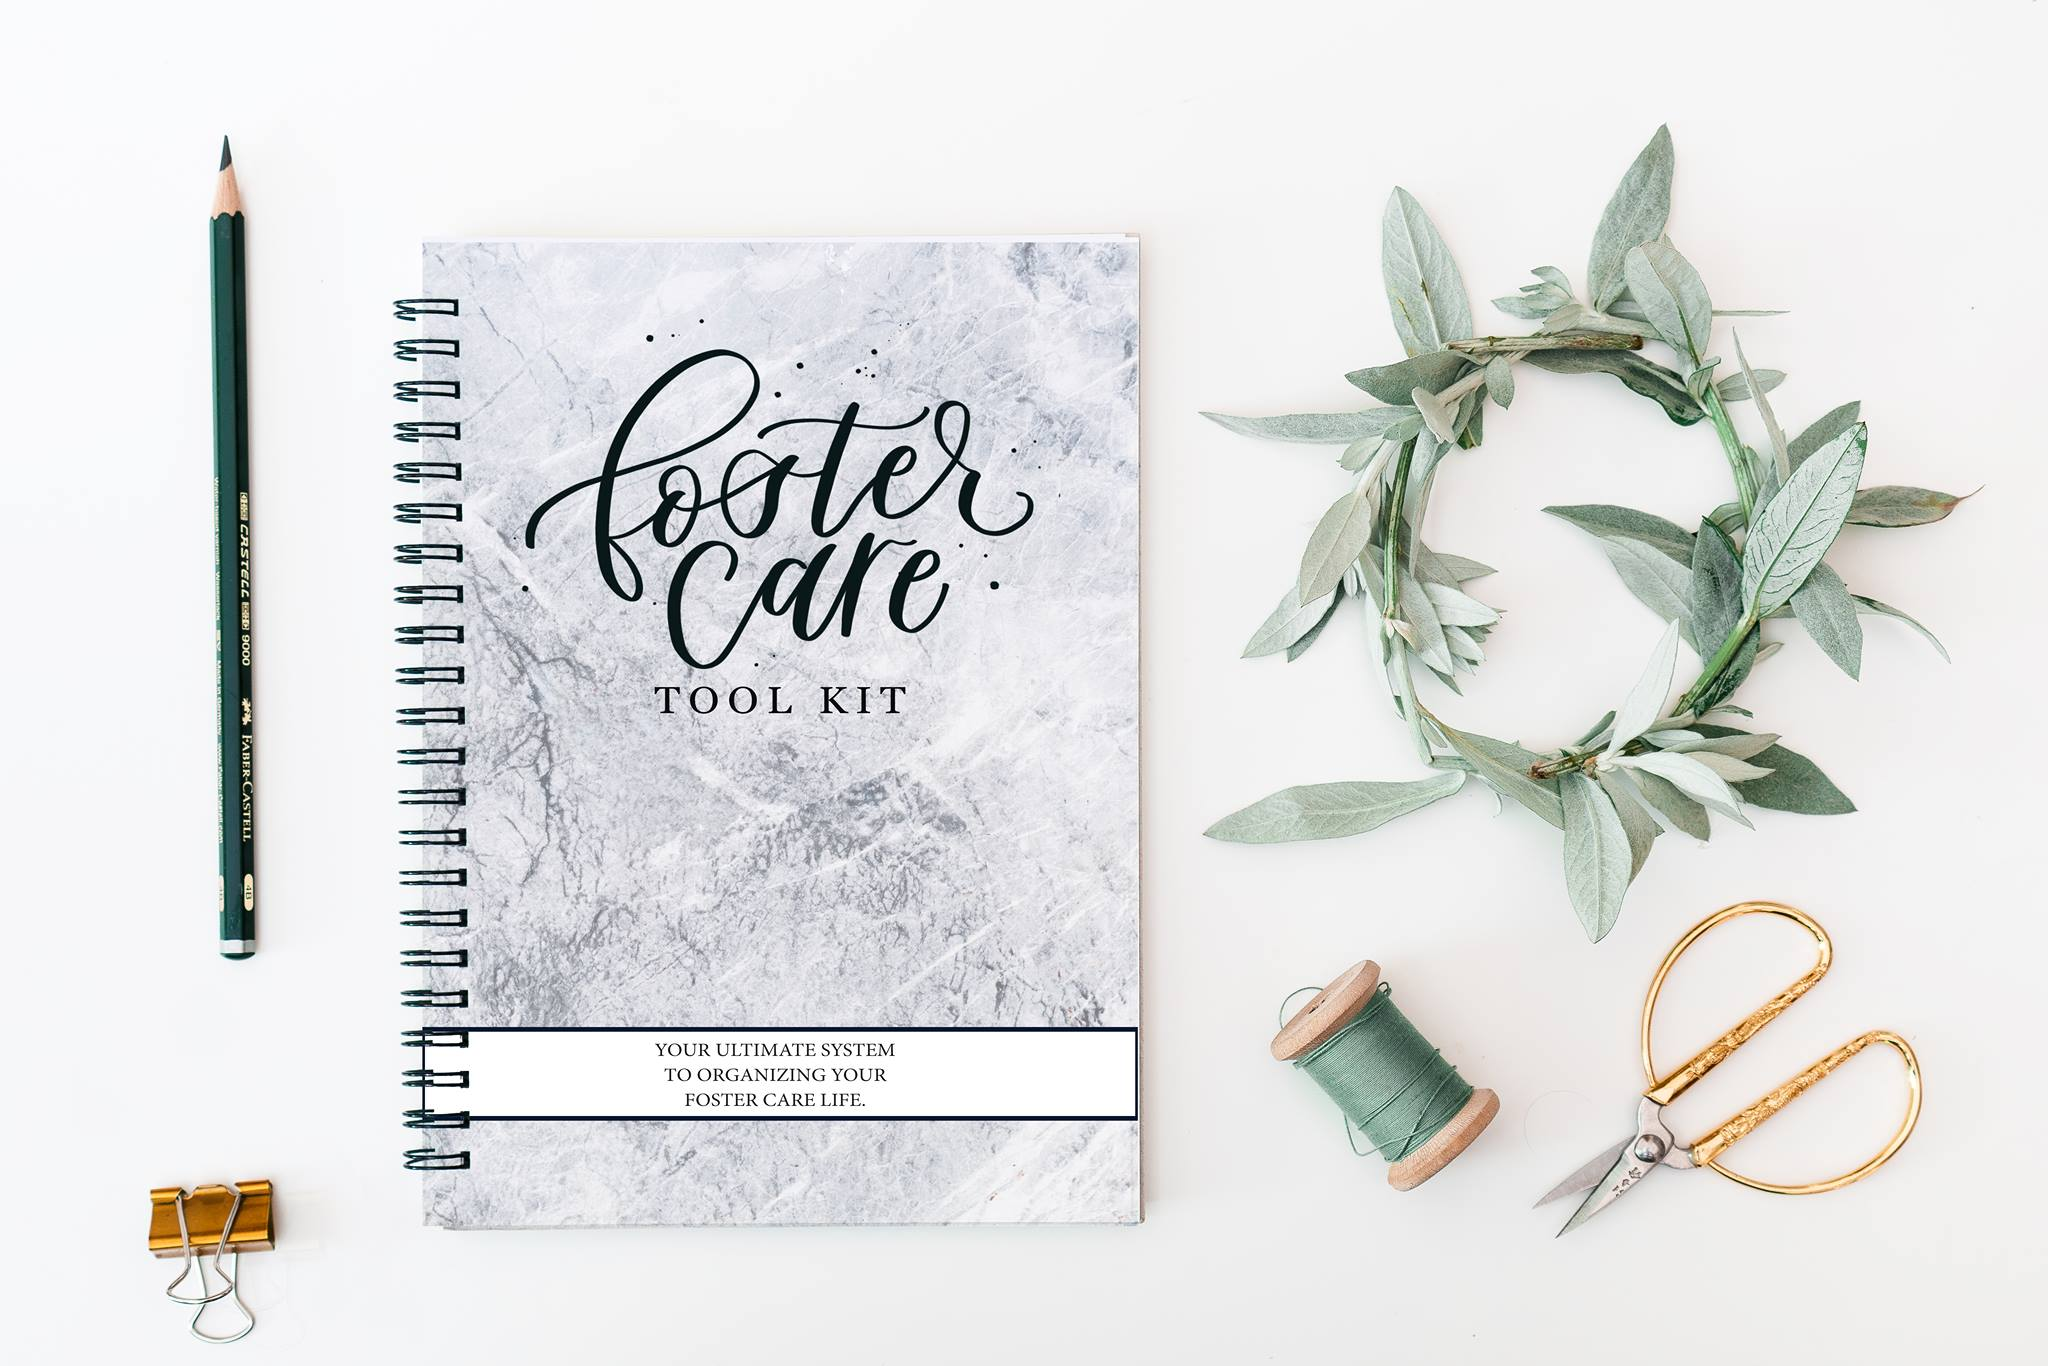 THE FOSTER CARE   TOOL KIT - YOUR ULTIMATE SYSTEM TO ORGANIZING YOUR FOSTER CARE LIFE.